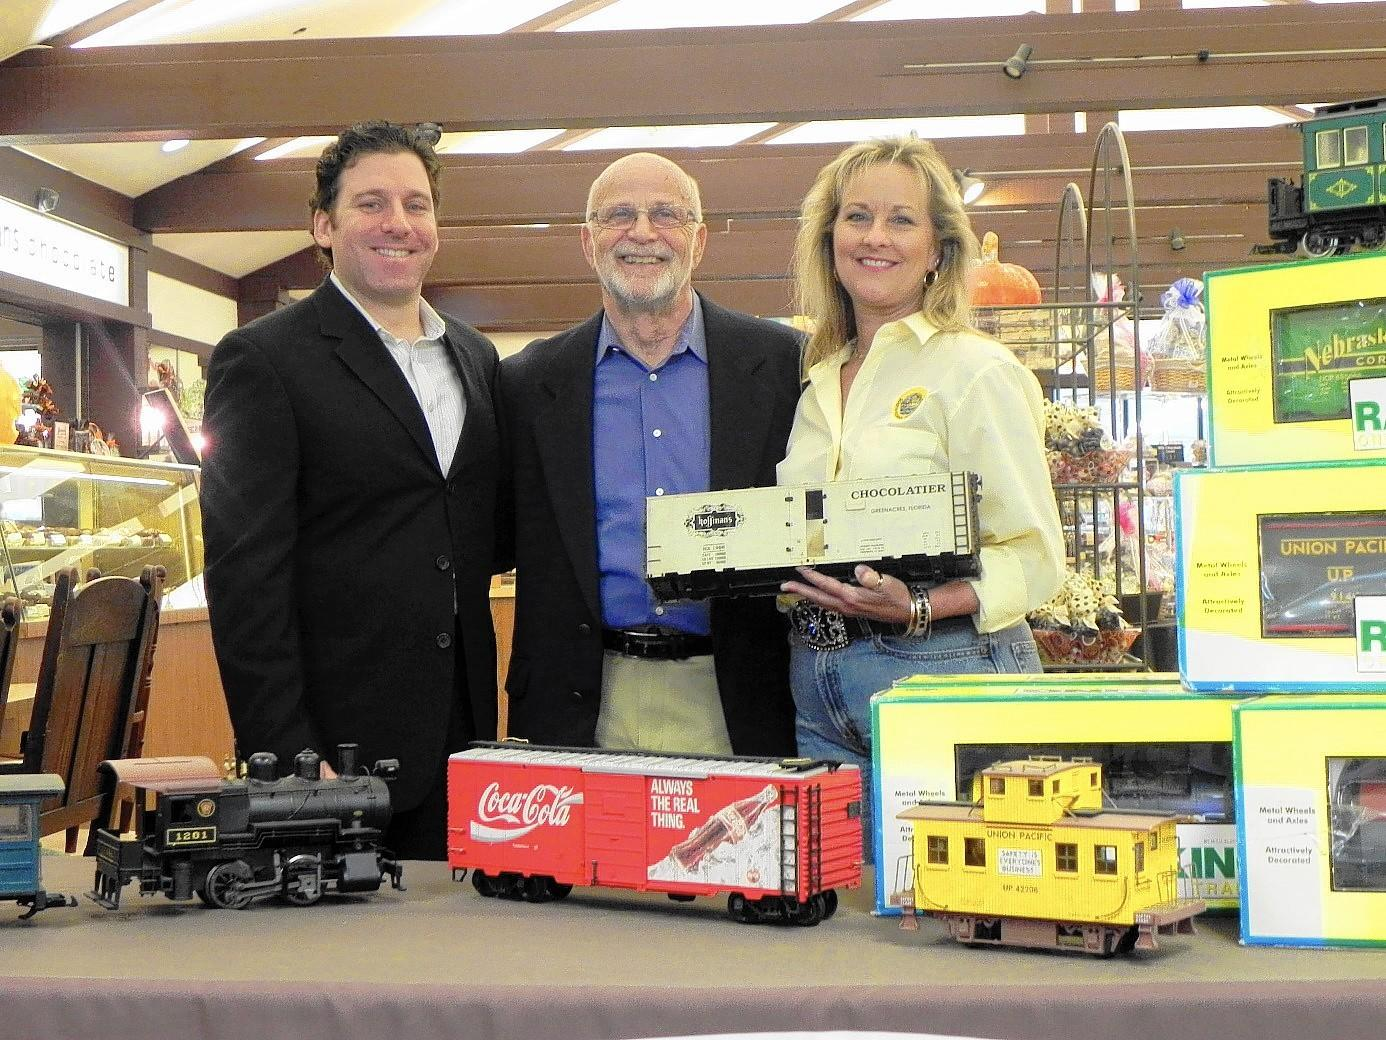 From left, Jarrett Levan, president of BBX Capital; Paul Hoffman, founder of Hoffman's Chocolate; and Paige Poole, manger of Yesteryear Village, are excited about Yesteryear Village's newest exhibit, a Railroad History Museum.